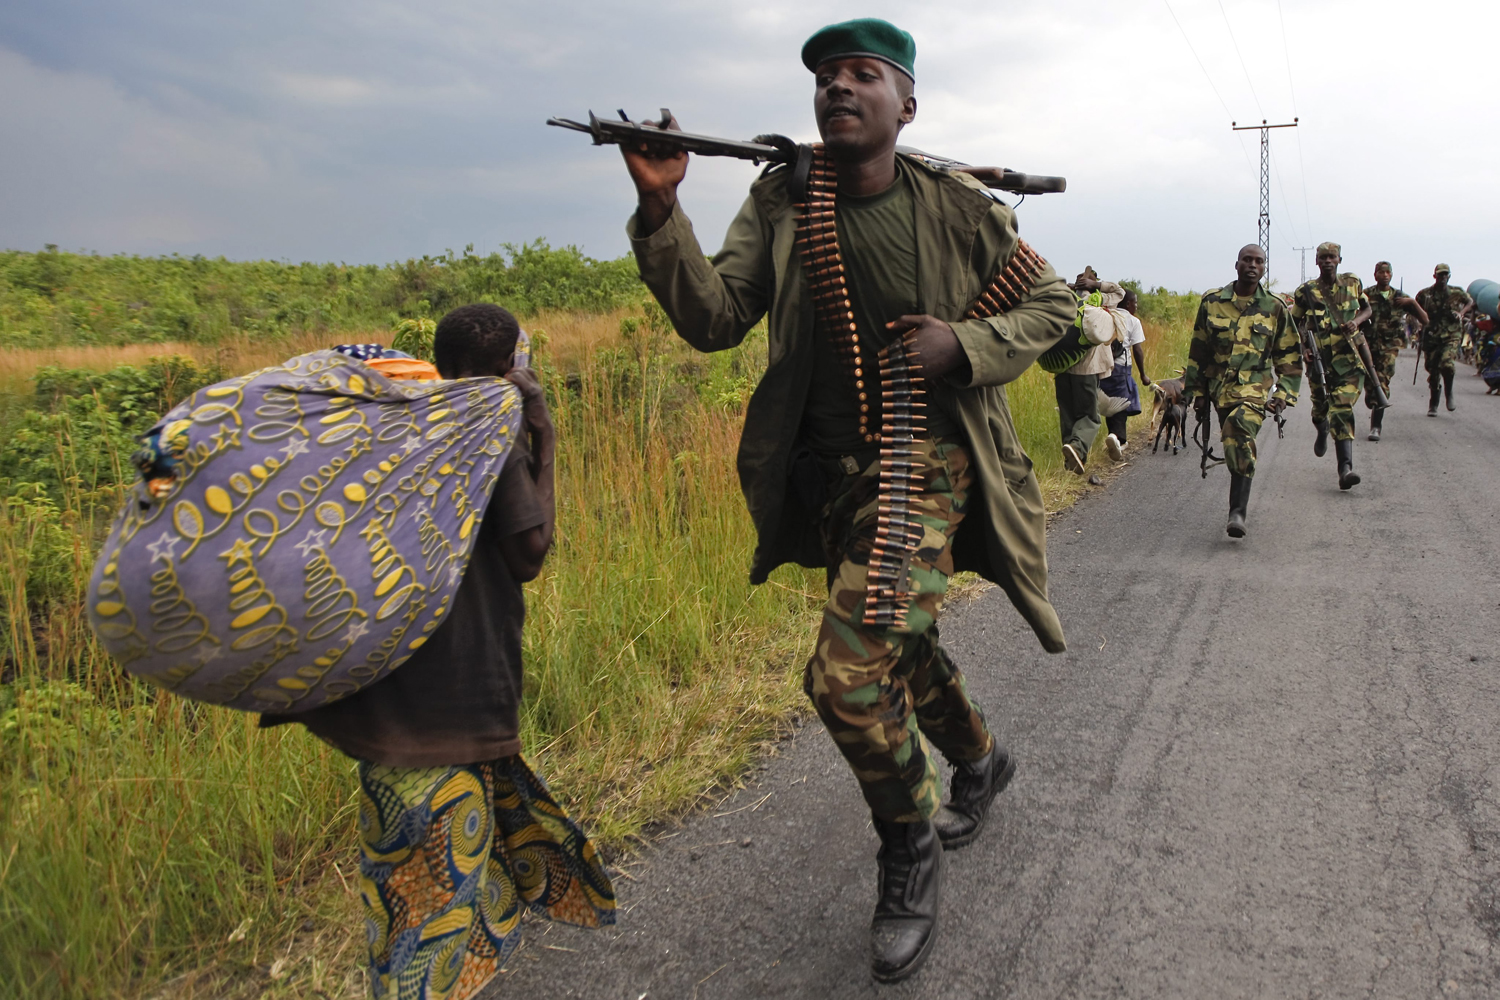 Image: Rsidents flee the rebel-held town of Sake as fighting intensifies